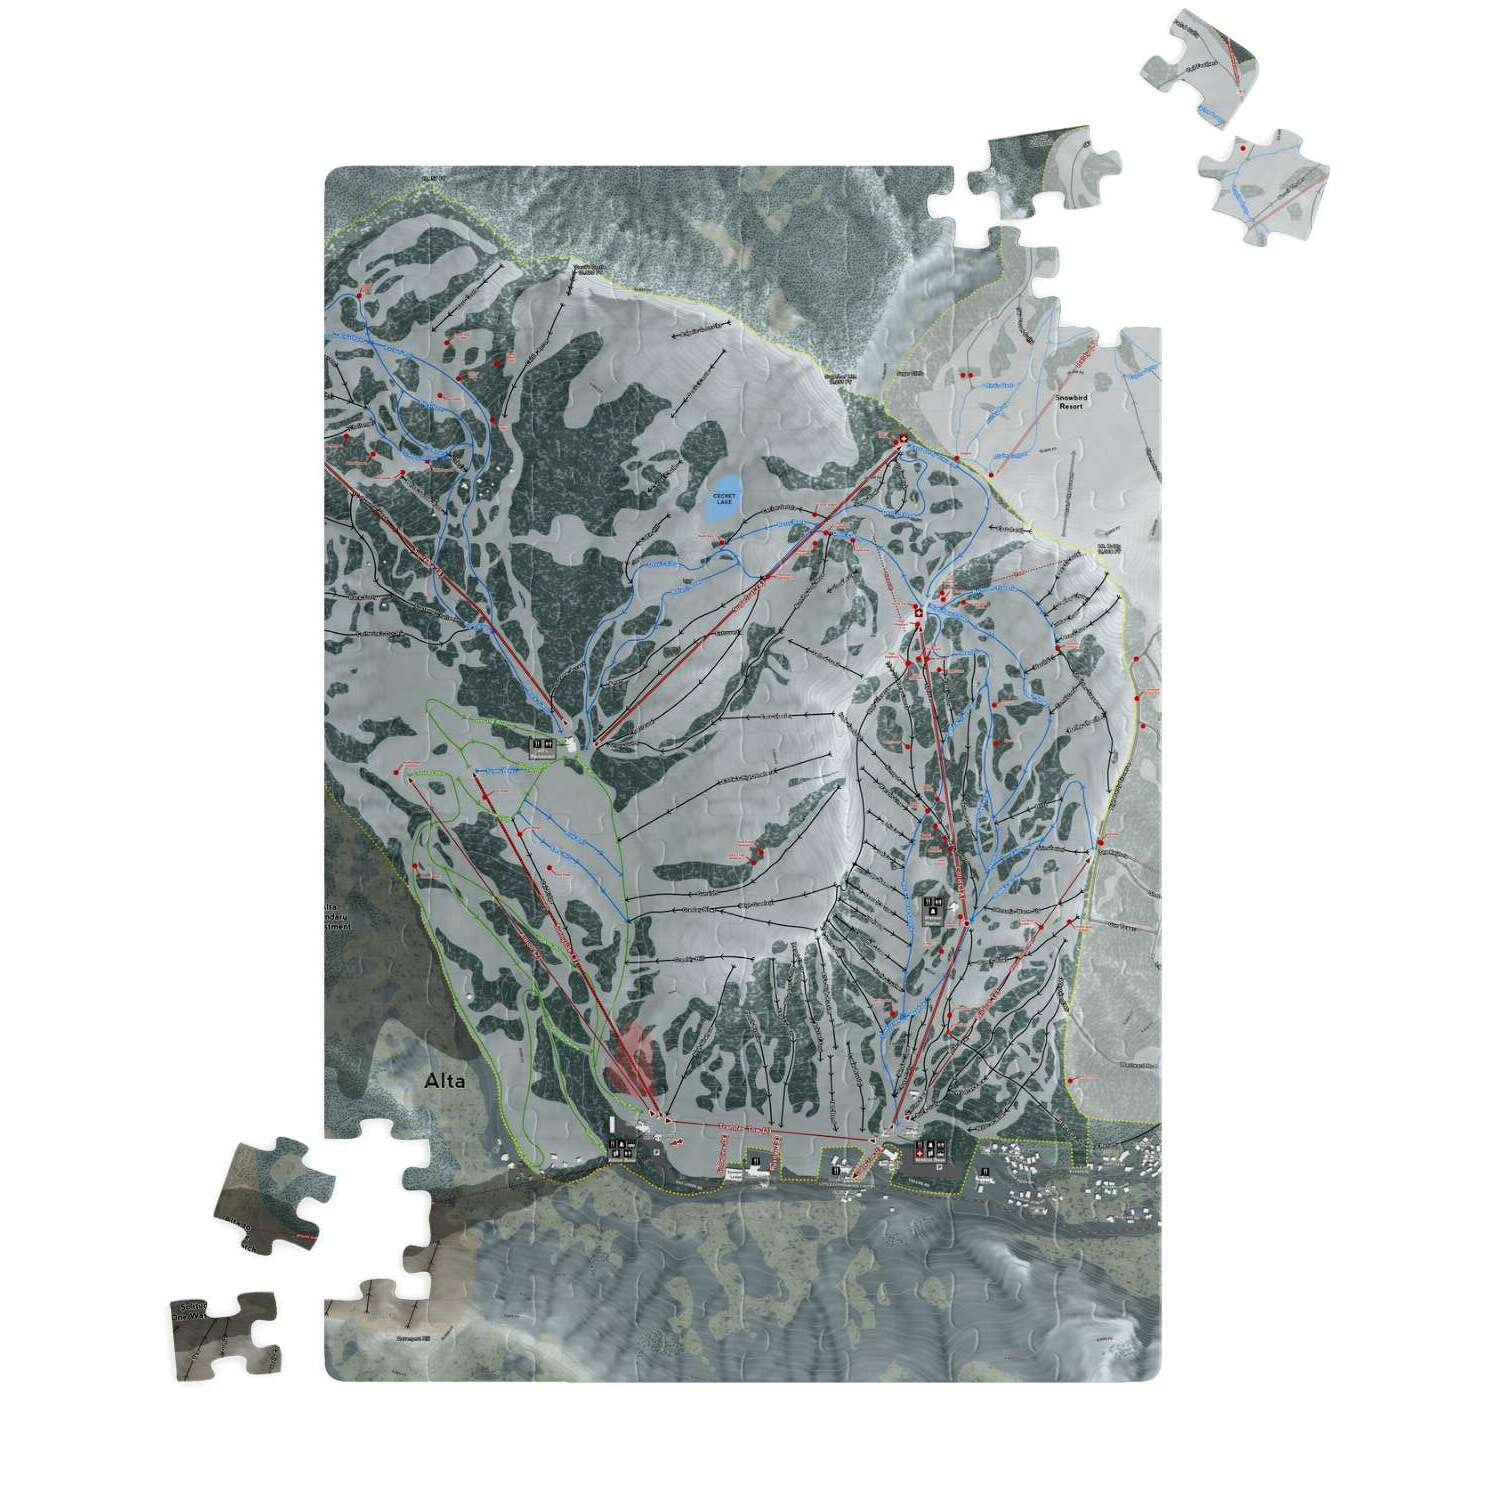 Alta, Utah Ski Resort Map Puzzle